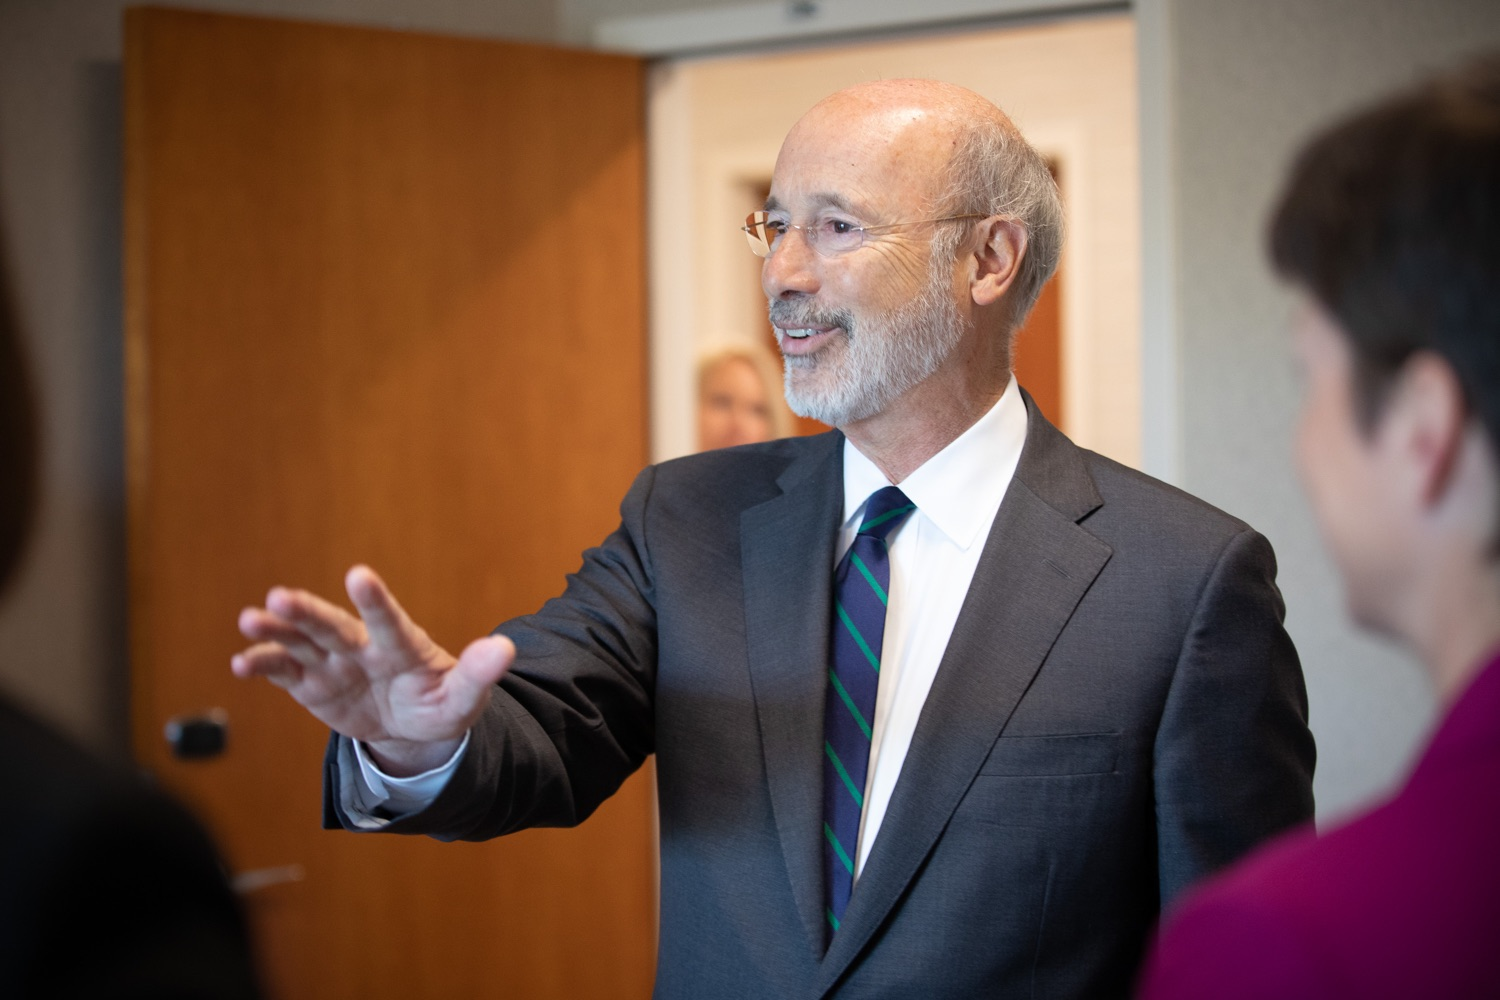 "<a href=""http://filesource.abacast.com/commonwealthofpa/photo/17467_gov_opioids_dz_009.JPG"" target=""_blank"">⇣ Download Photo<br></a>Boalsburg, PA  Governor Tom Wolf speaking with summit attendees. Governor Tom Wolf today kicked off his administrations first Opioid Command Center Opioid Summit: Think Globally, Act Locally, which brought together 200 individuals helping their communities fight the opioid crisis, including community organizations, non-profits, schools, health care workers, addiction and recovery specialists, and families affected by the opioid crisis.  Tuesday, October 1, 2019"